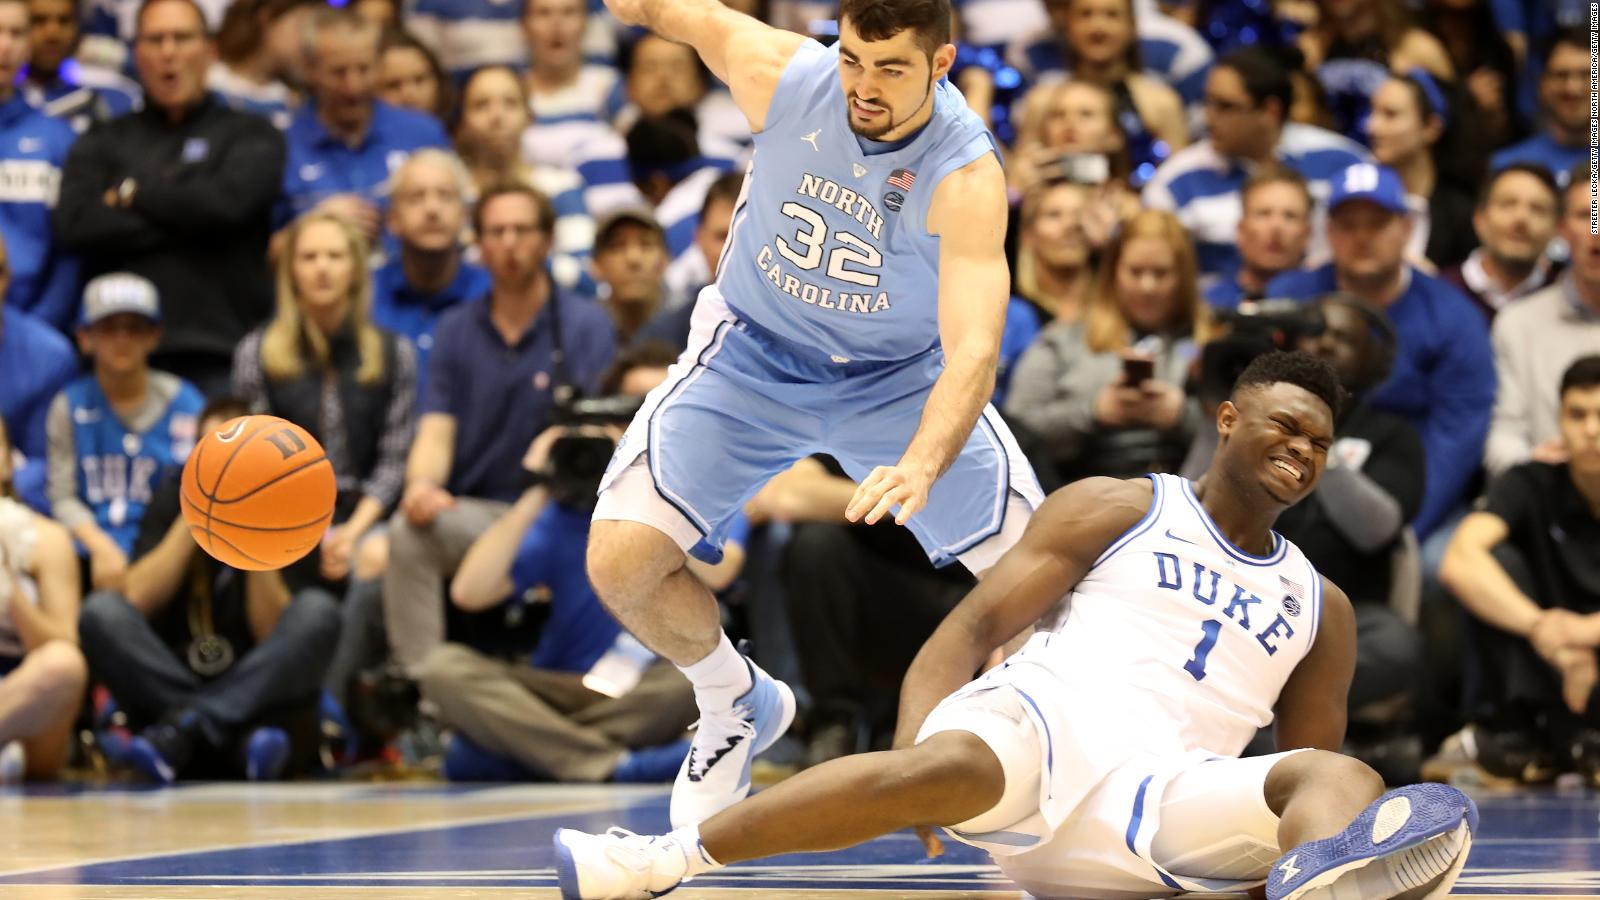 d161c88b Nike's stock falls after Duke star is hurt as his sneaker comes apart